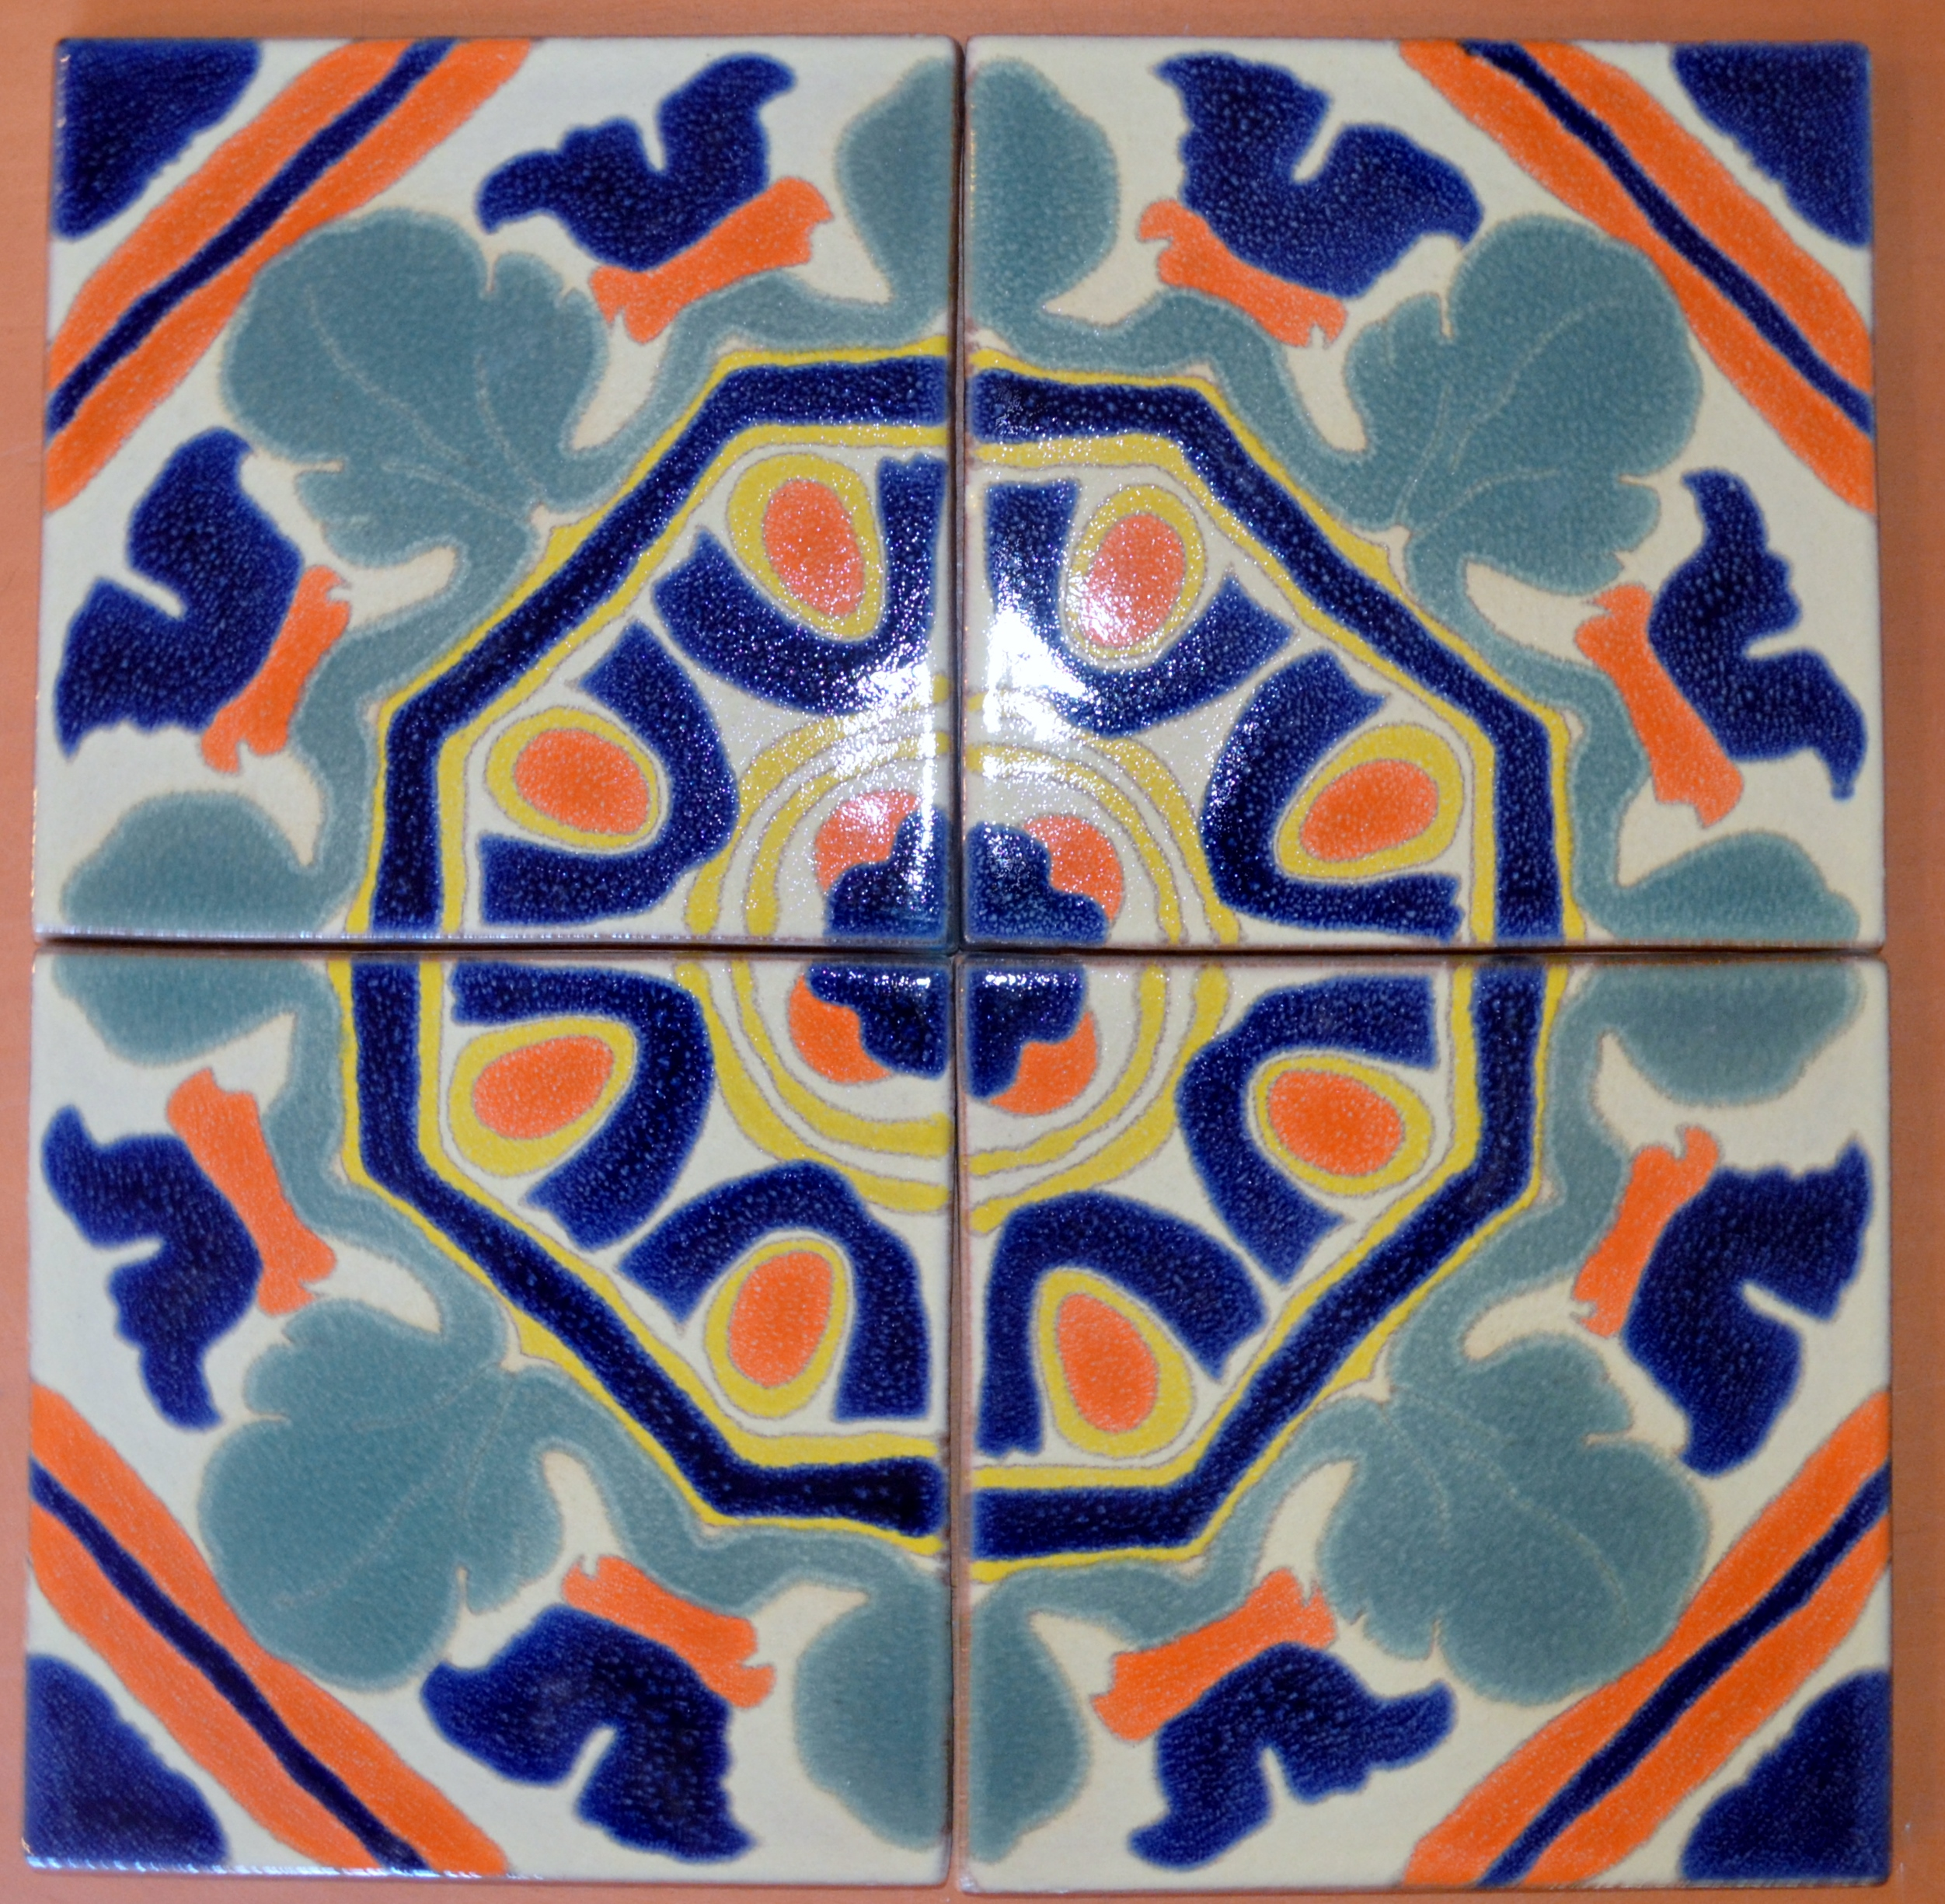 File:This 4-tile pattern illustrates very well the patterns of ...